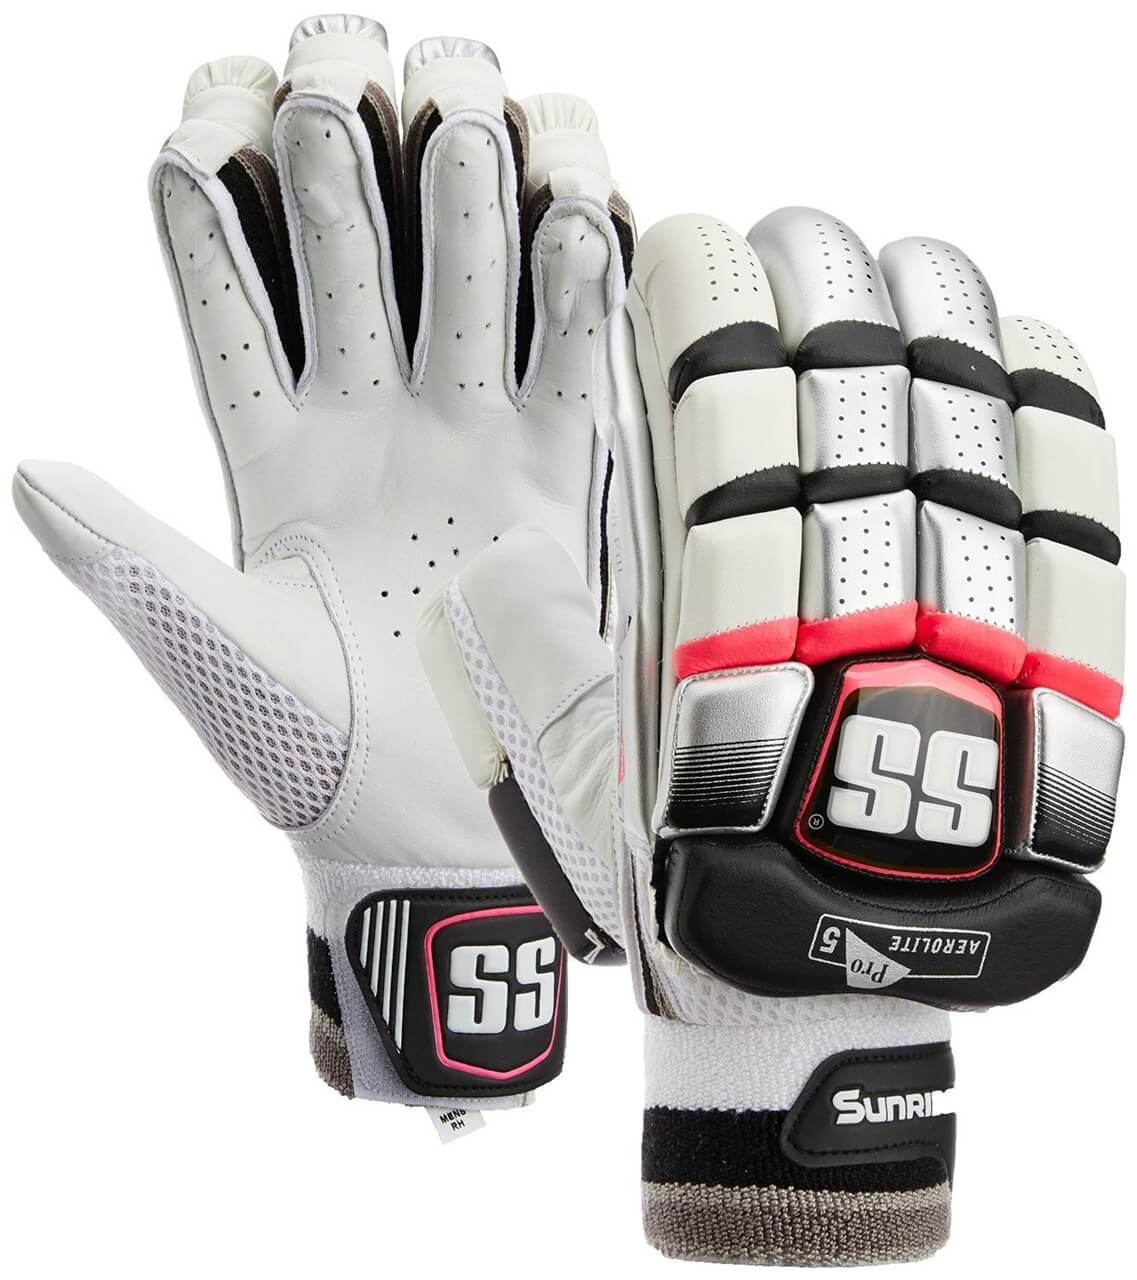 Ss Cricket Batting Gloves Aerolite Pro 5 By Sunridges